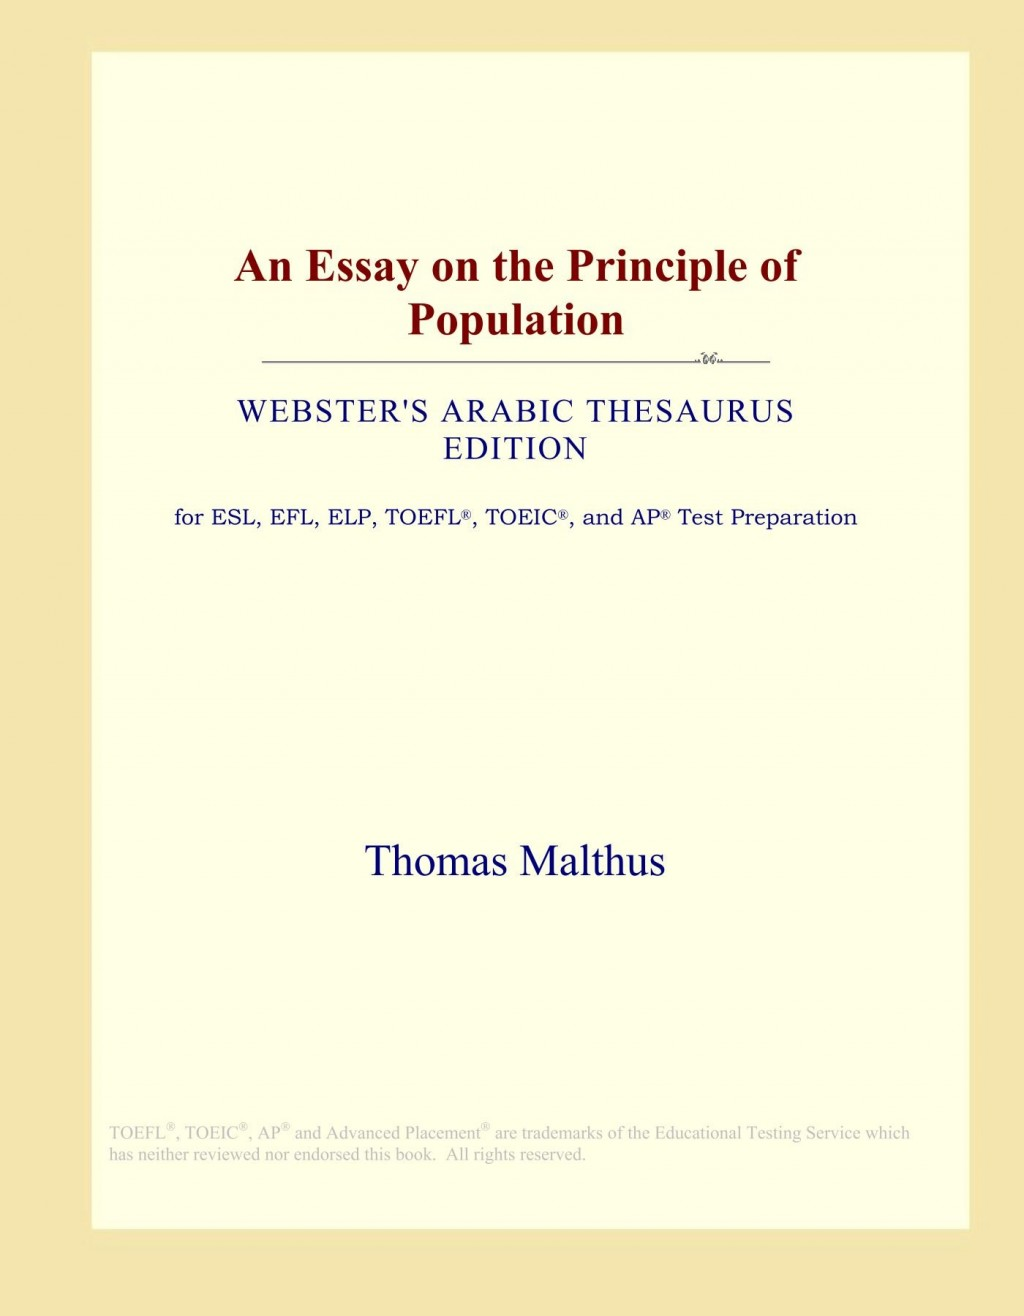 020 61groeunvgl Essay Example An On The Principle Of Fascinating Population By Thomas Malthus Pdf In Concluded Which Following Large